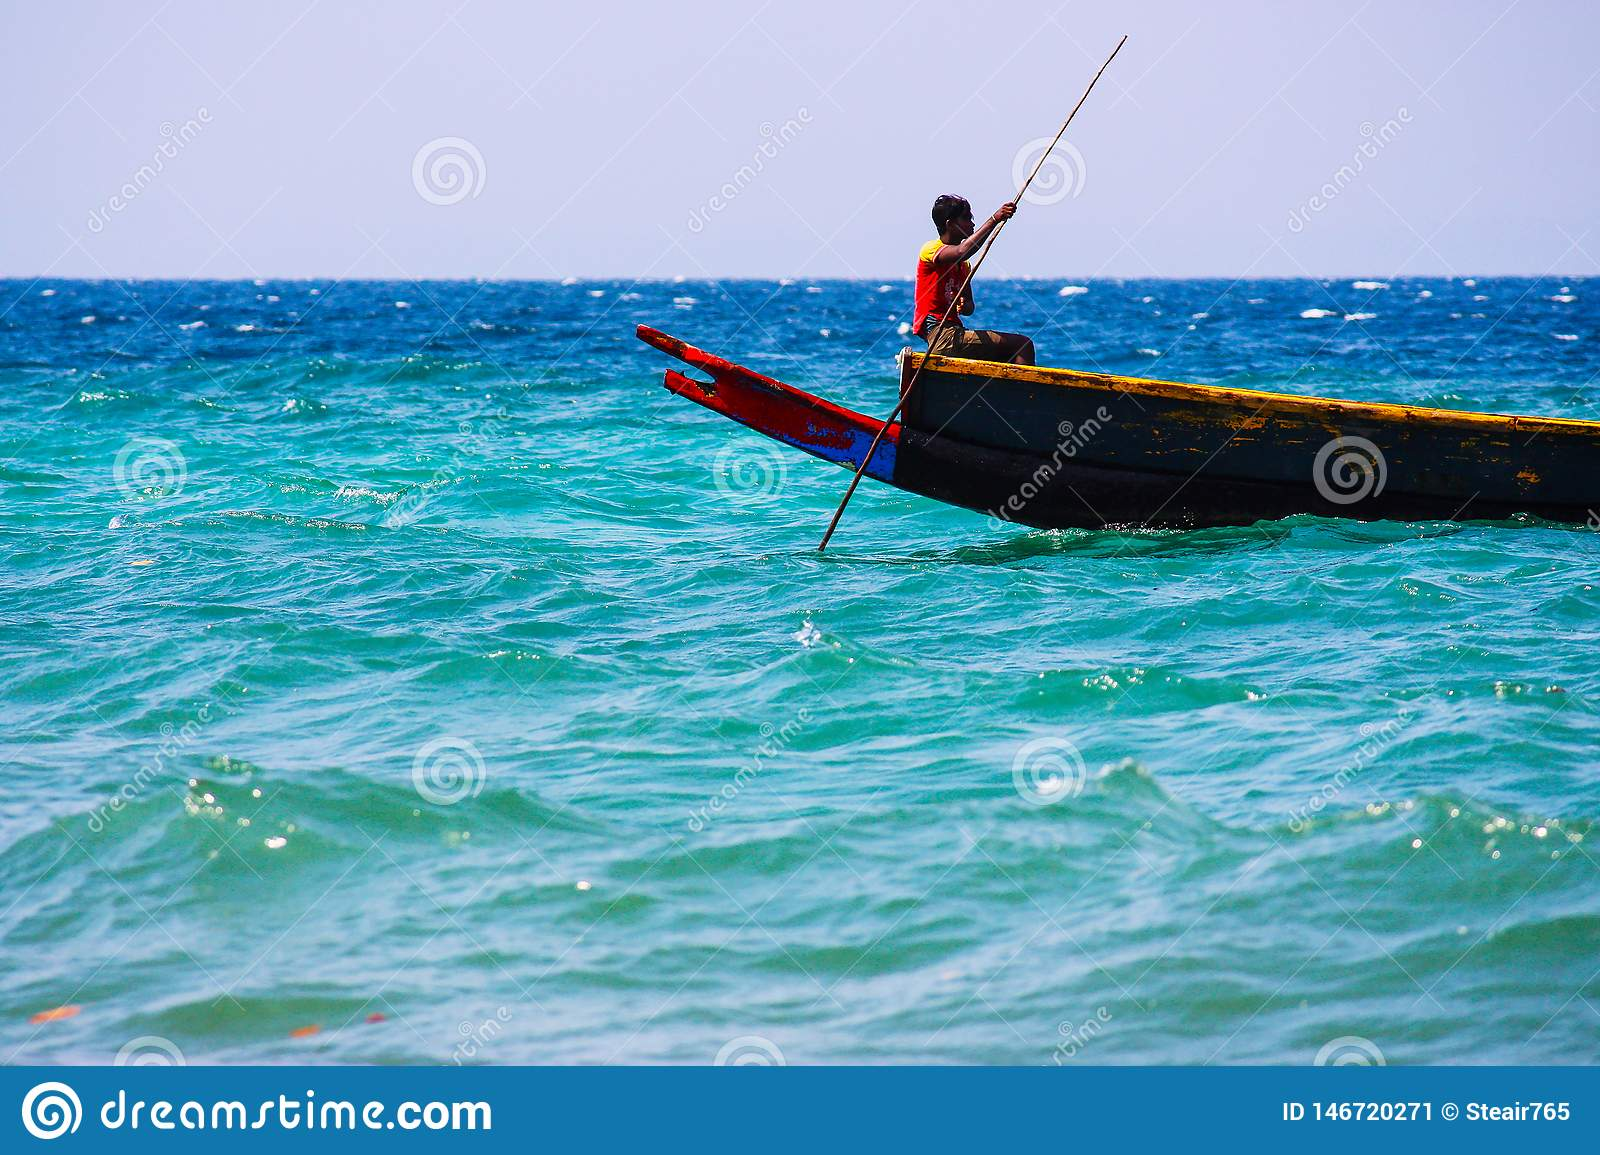 Indian fisherman on his boat in the sea